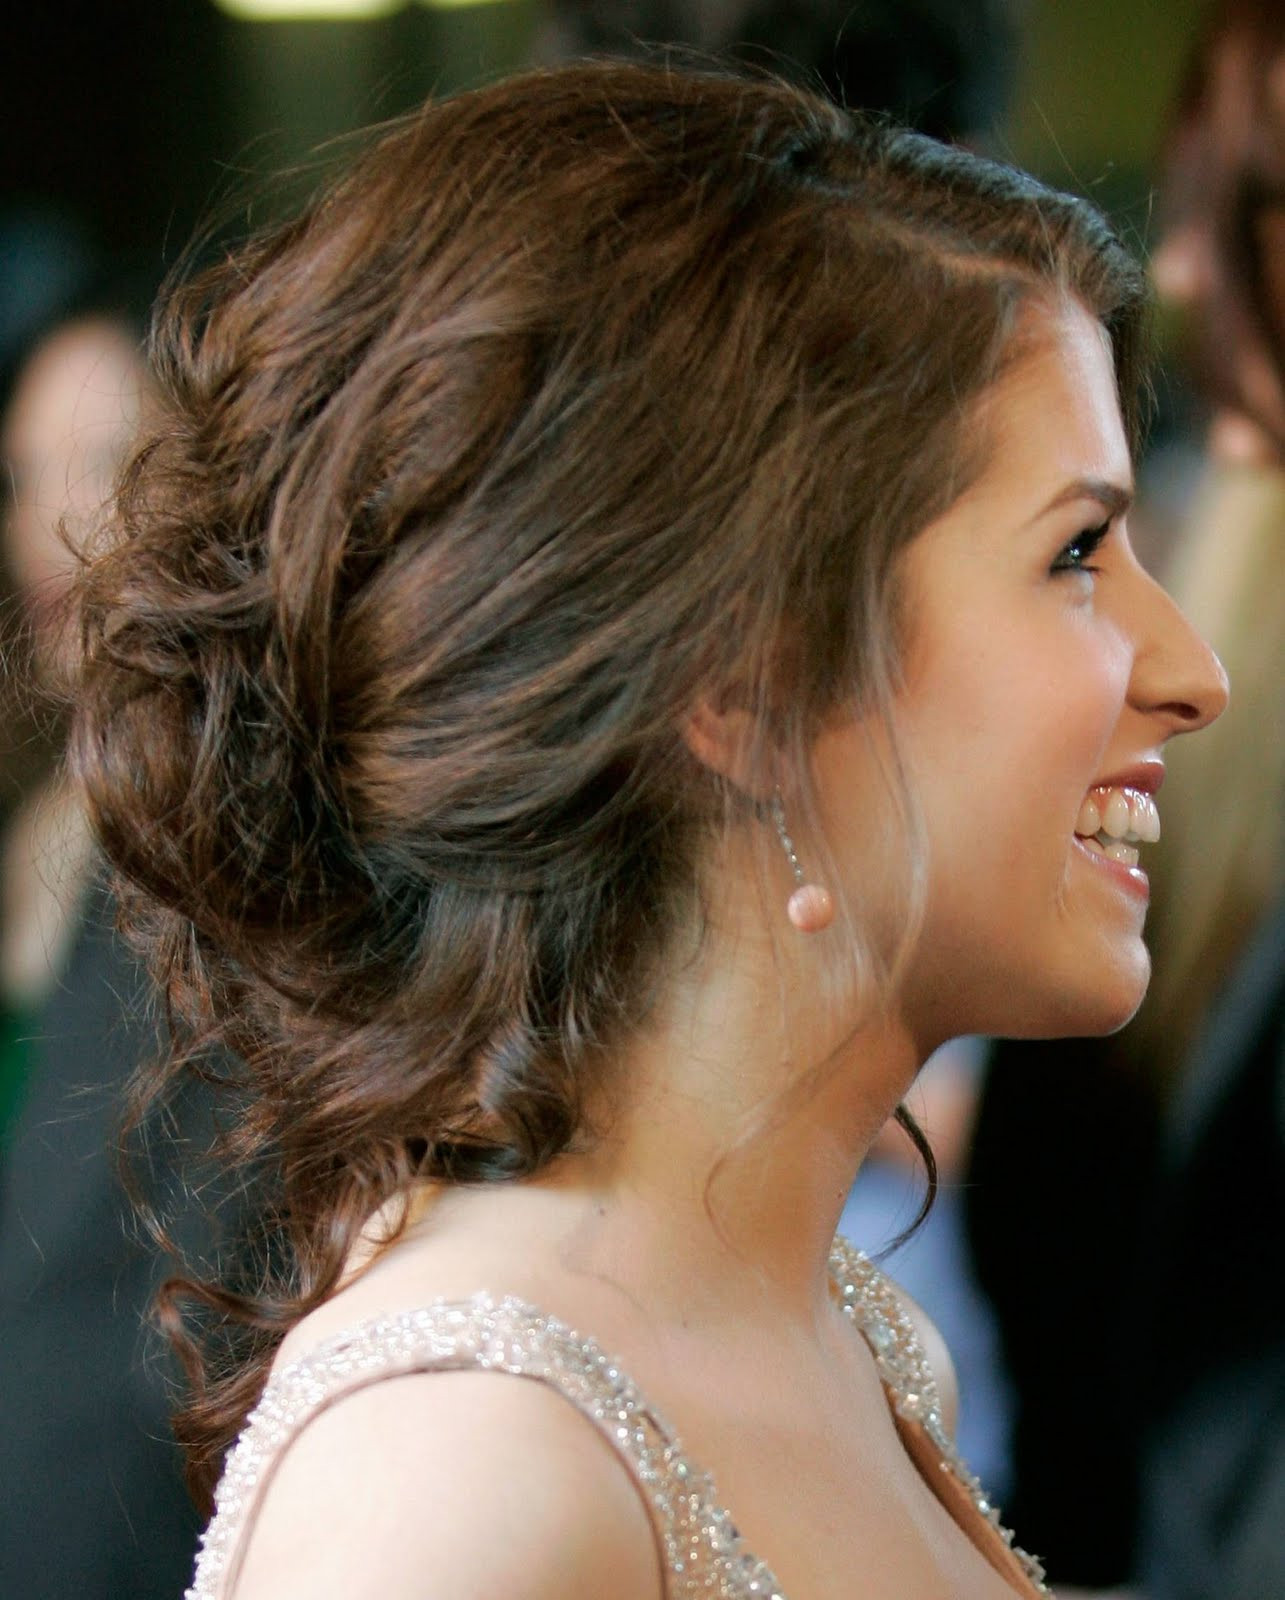 Best ideas about Updo Hairstyle . Save or Pin Updo Hairstyles Hairstyles Now.